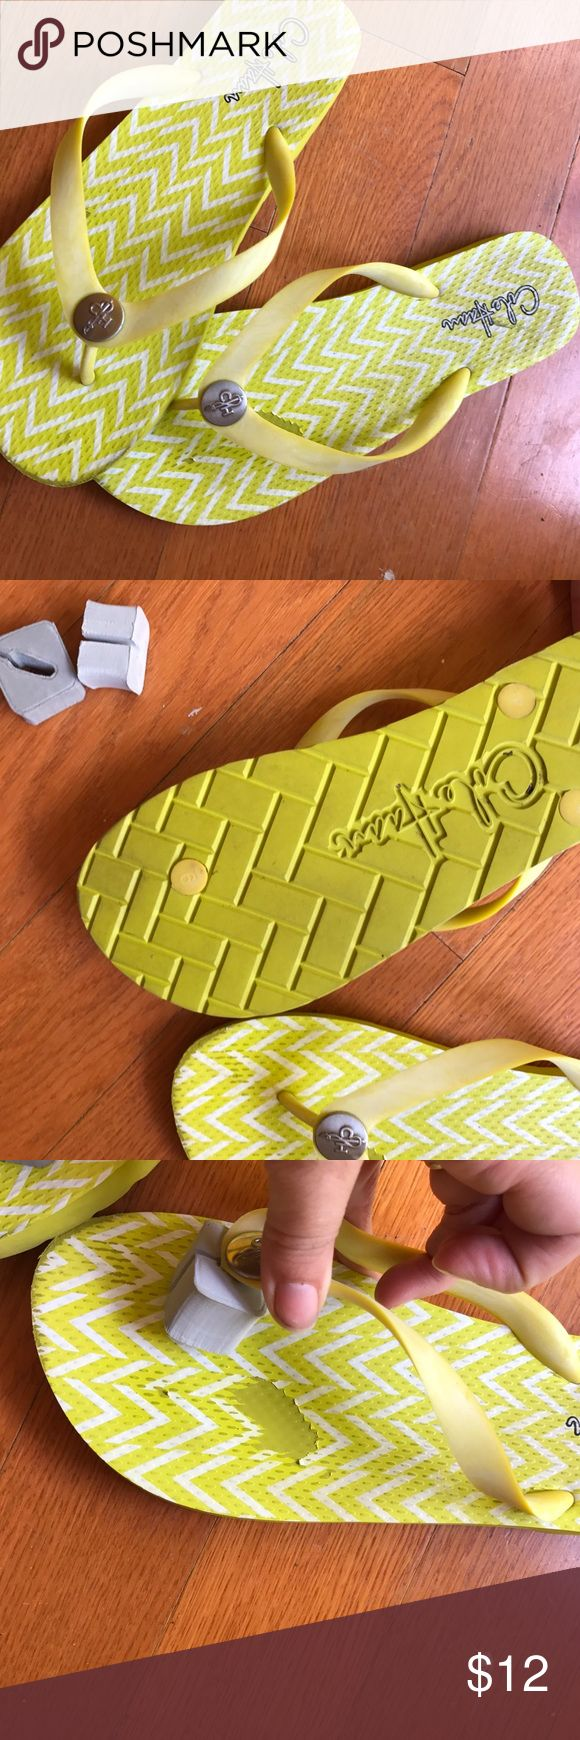 Cole haan yellow chevron flip flops Bright and cheery yellow flip flops! Good used condition. Spot on footbed, pictured, some scuffing by toes, also pictured. Cole Haan Shoes Sandals